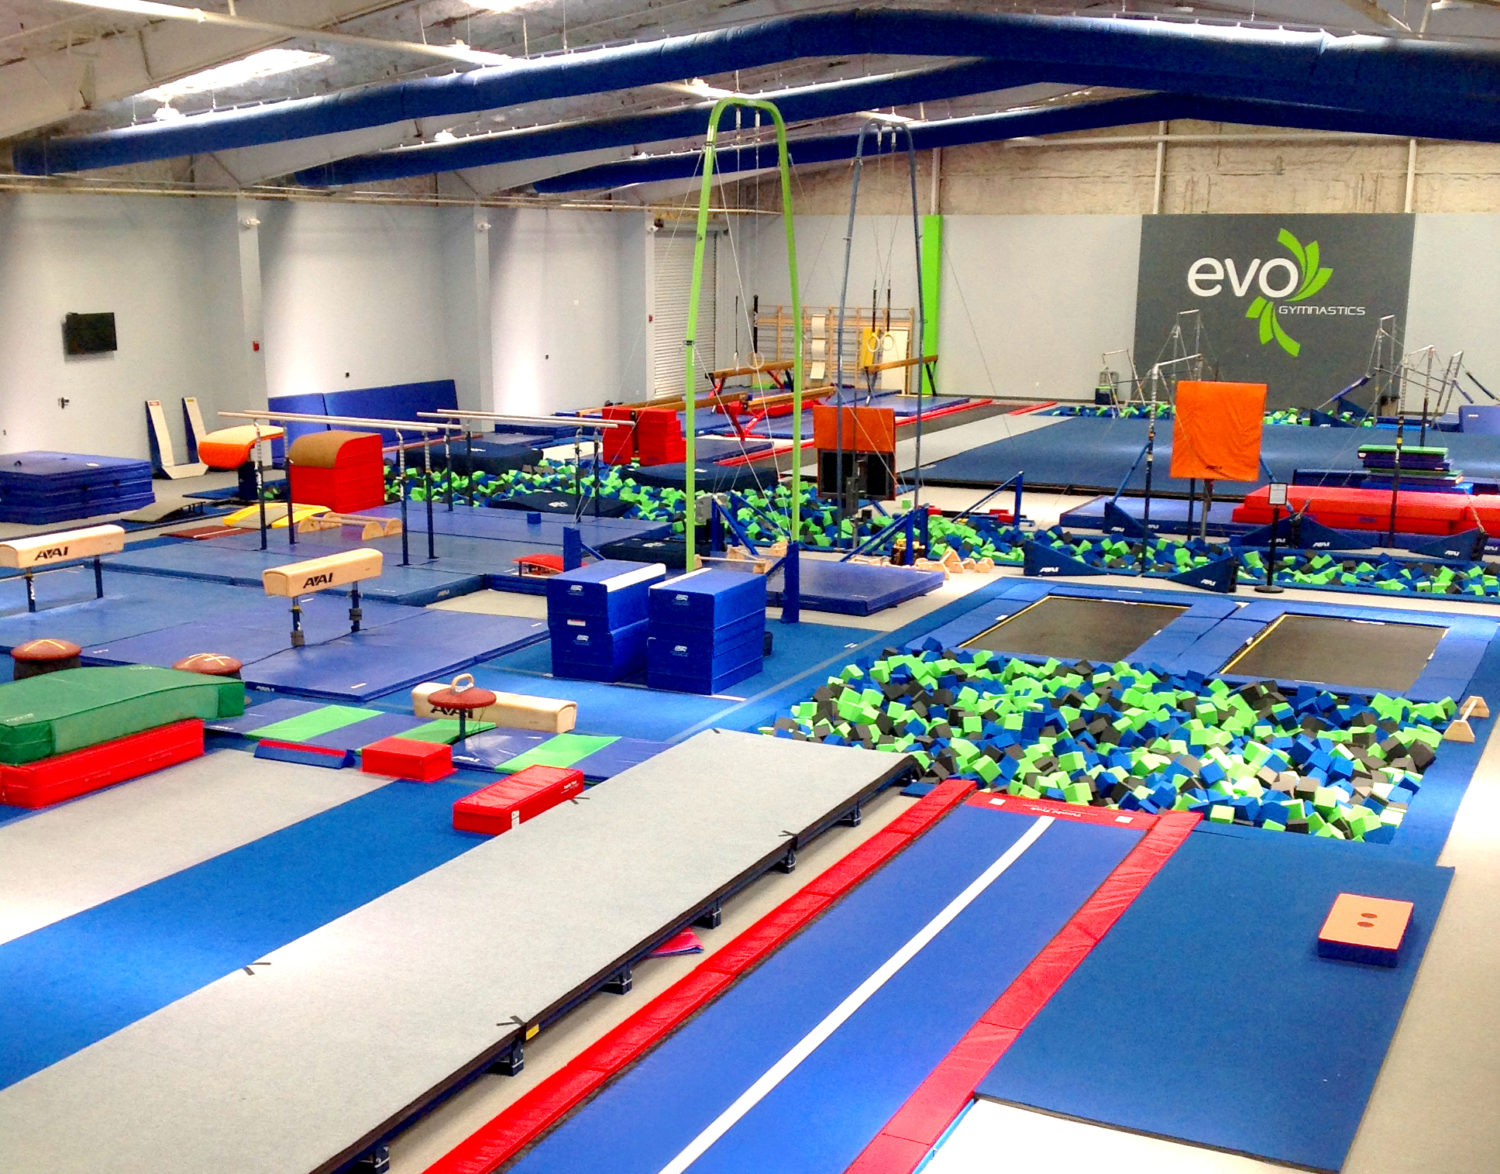 Evo athletics open gym